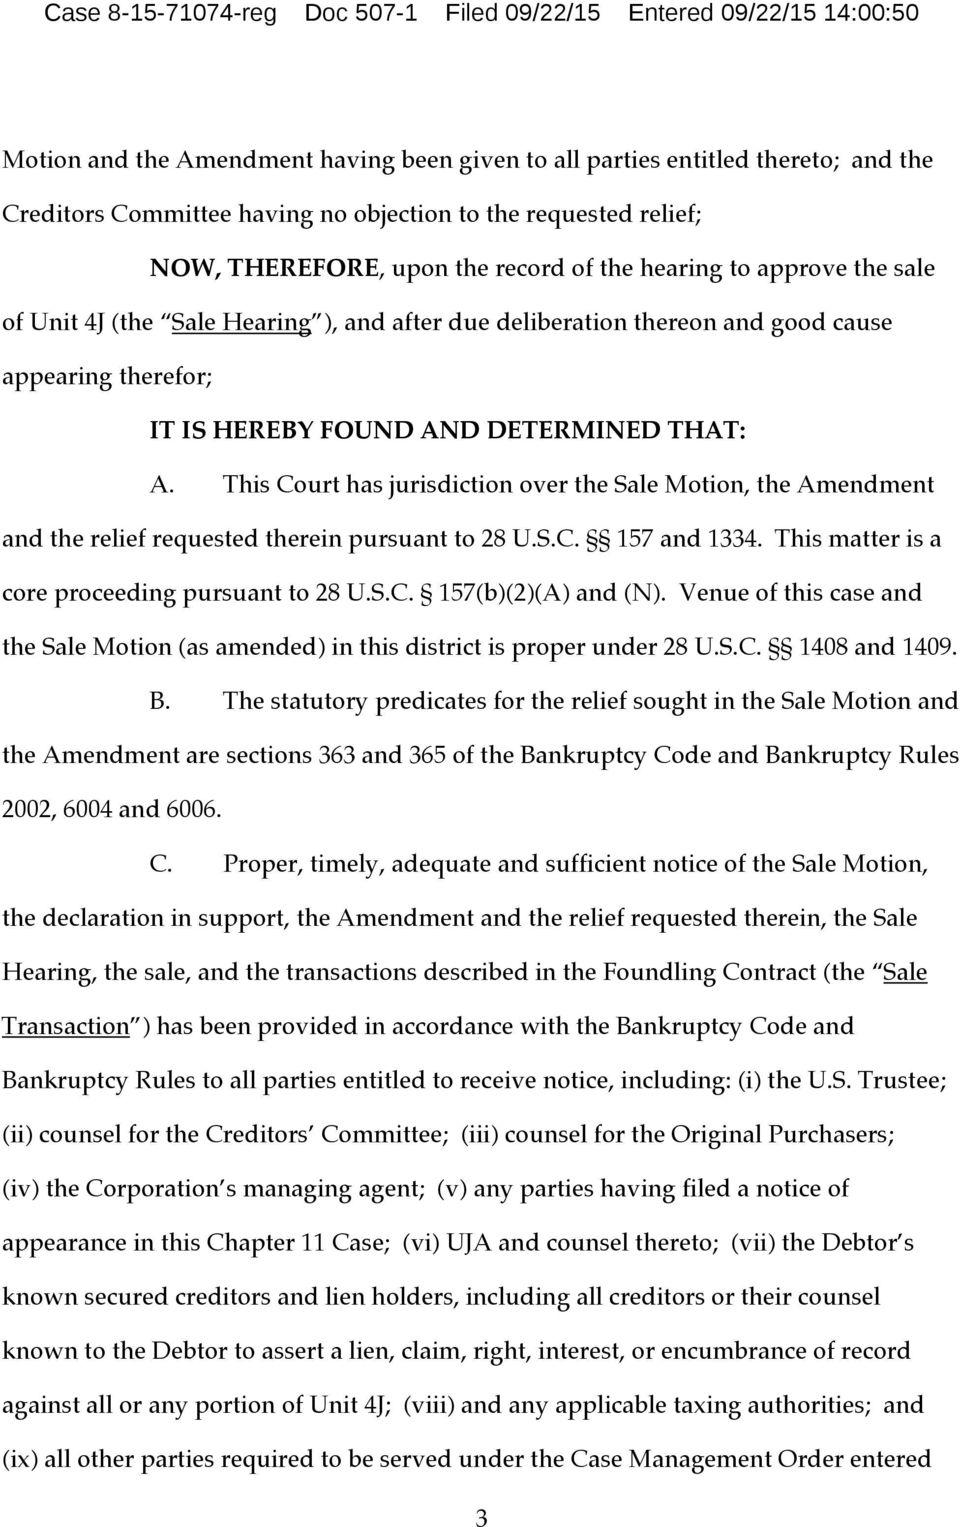 HEREBY FOUND AND DETERMINED THAT: A. This Court has jurisdiction over the Sale Motion, the Amendment and the relief requested therein pursuant to 28 U.S.C. 157 and 1334.